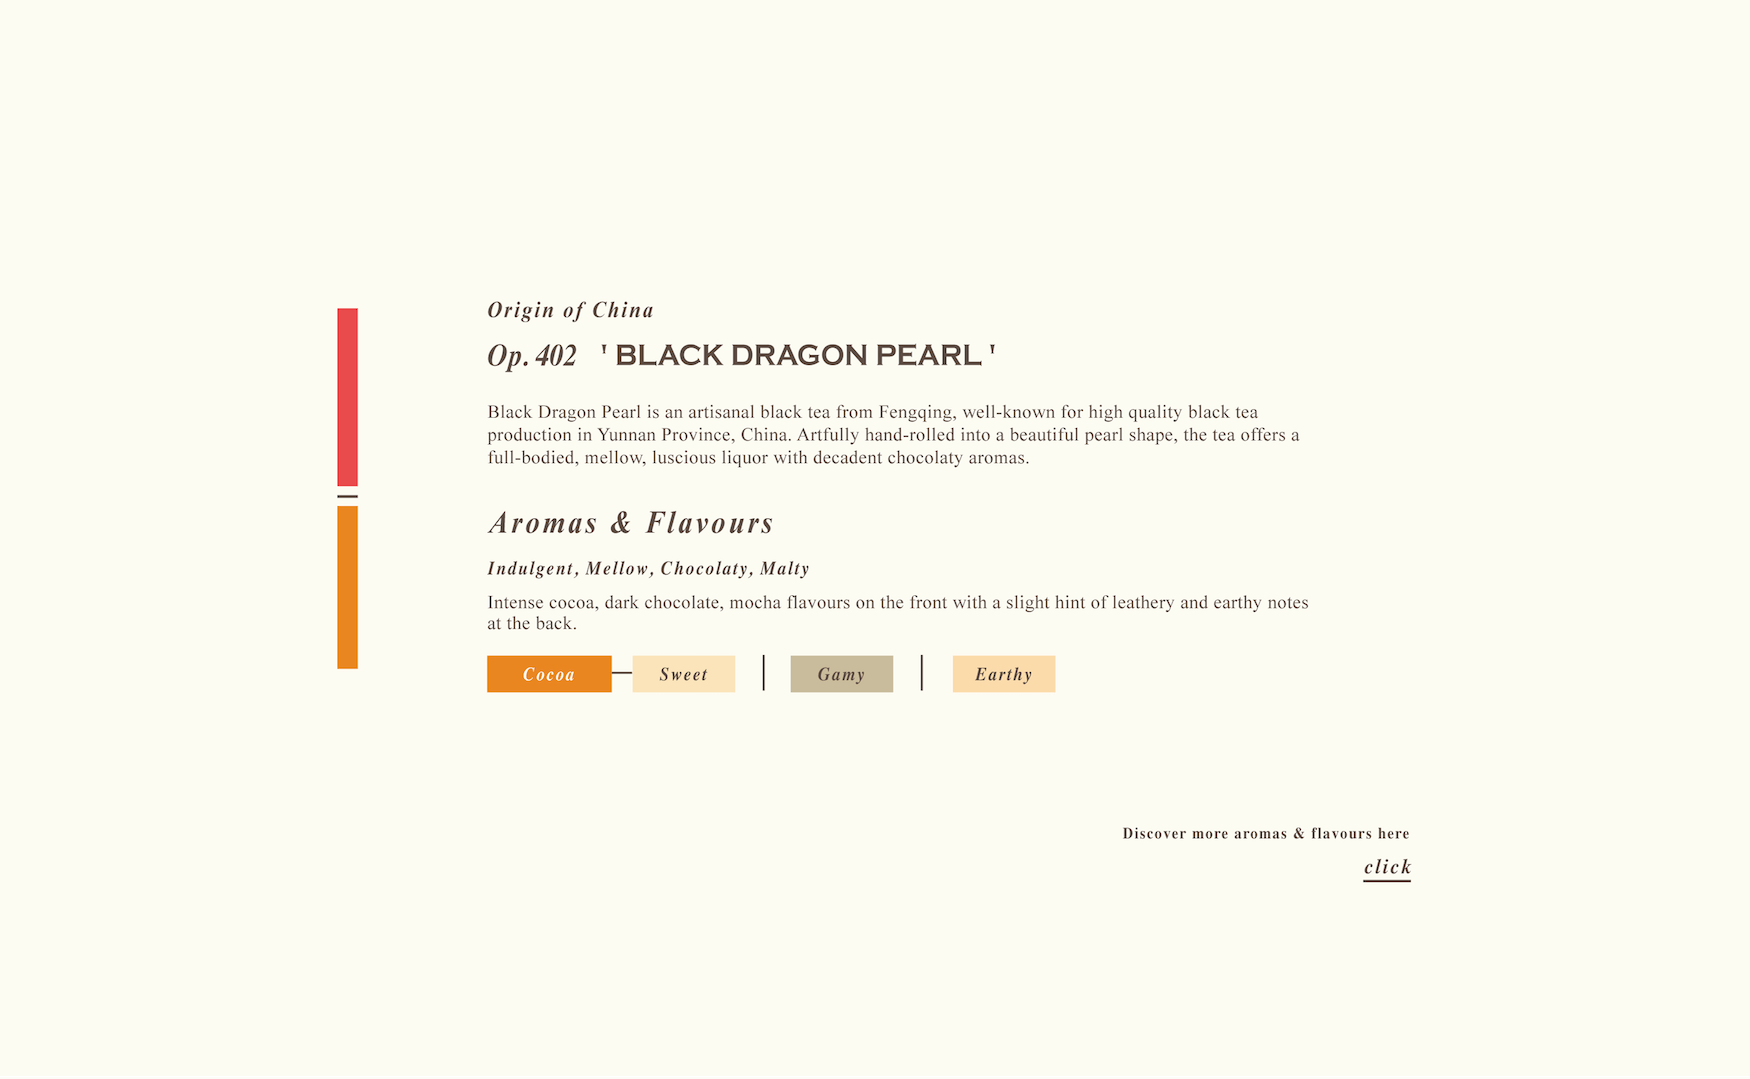 Black Dragon Pearl Loose Black Tea Aroma Profile